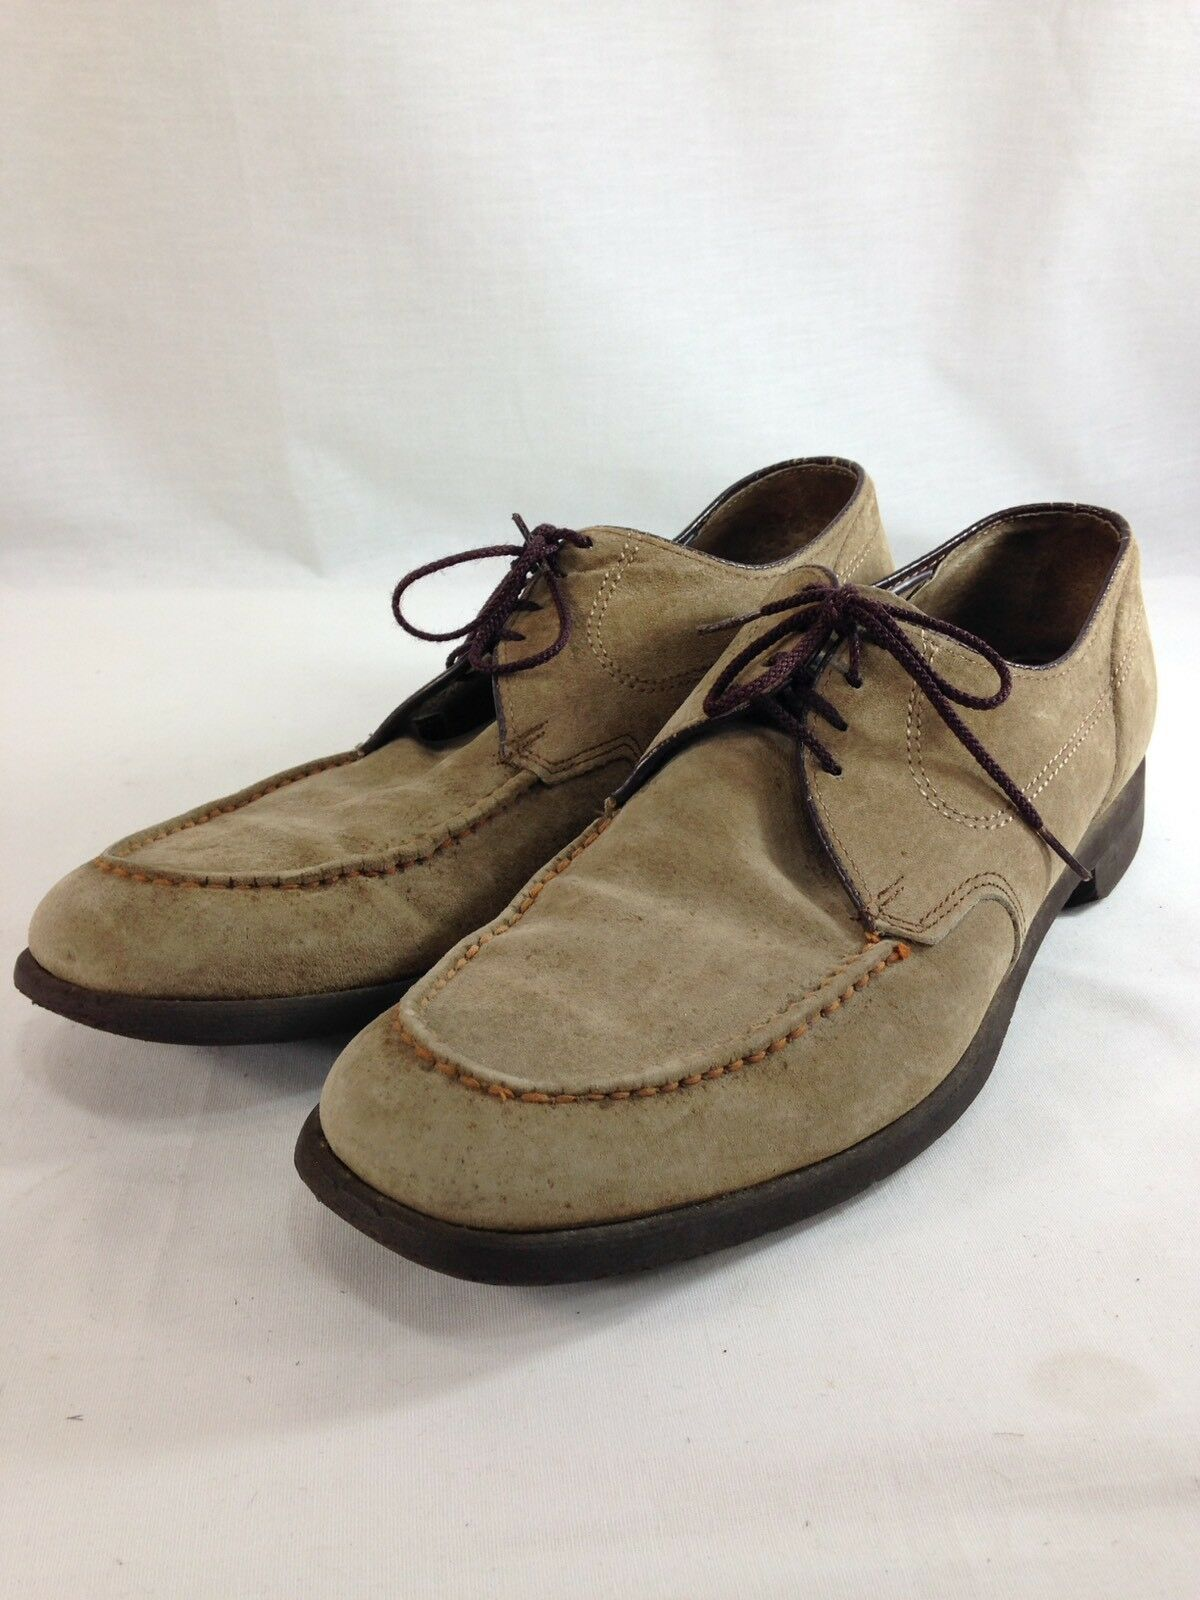 VTG Hush Puppies shoes Loafers Mens 12 Brown Suede Leather Lace Up Moc Toe